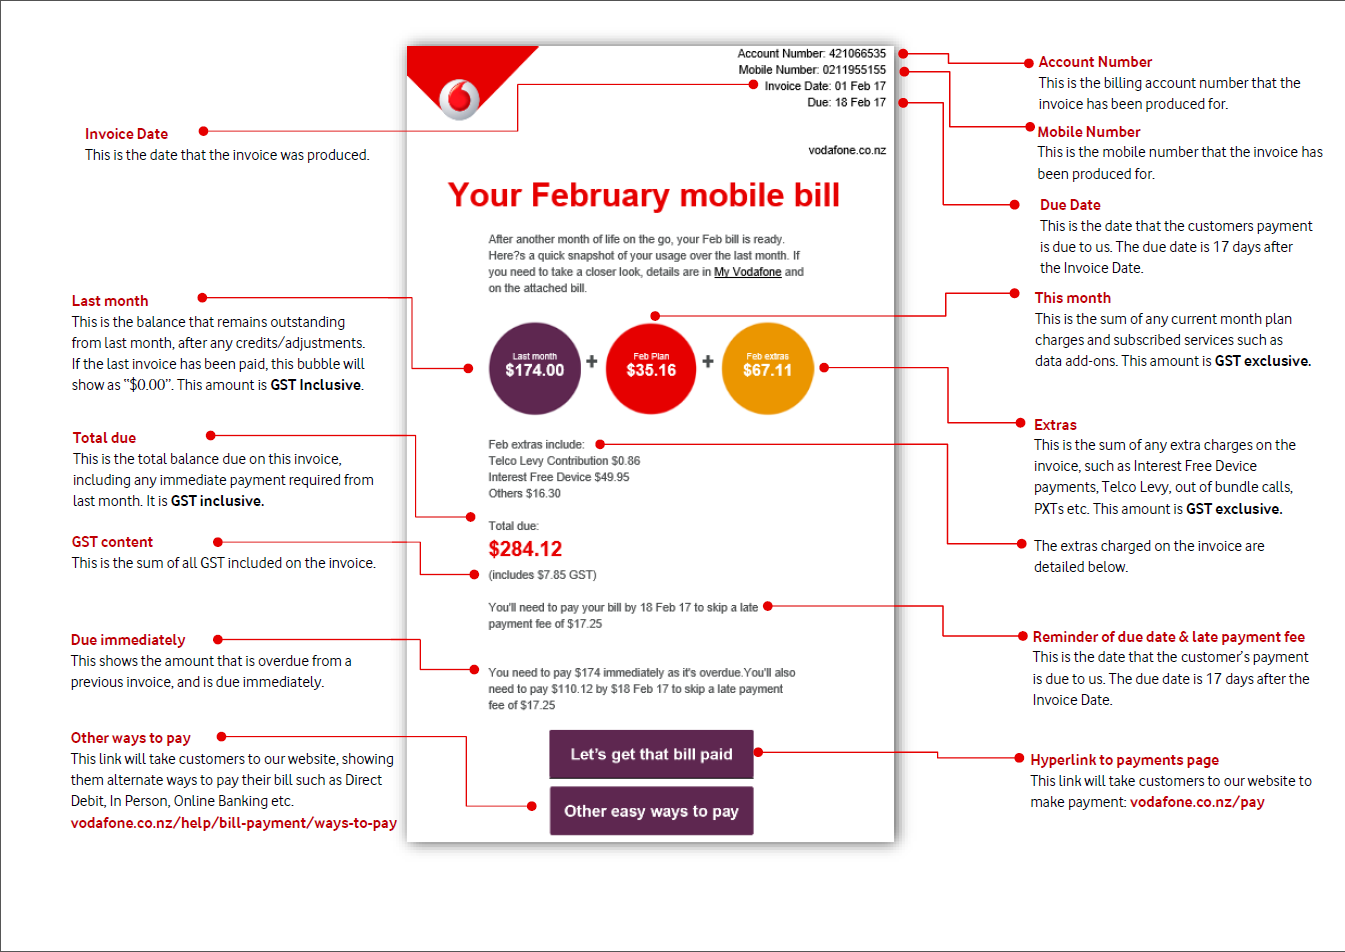 Example Vodafone mobile bill